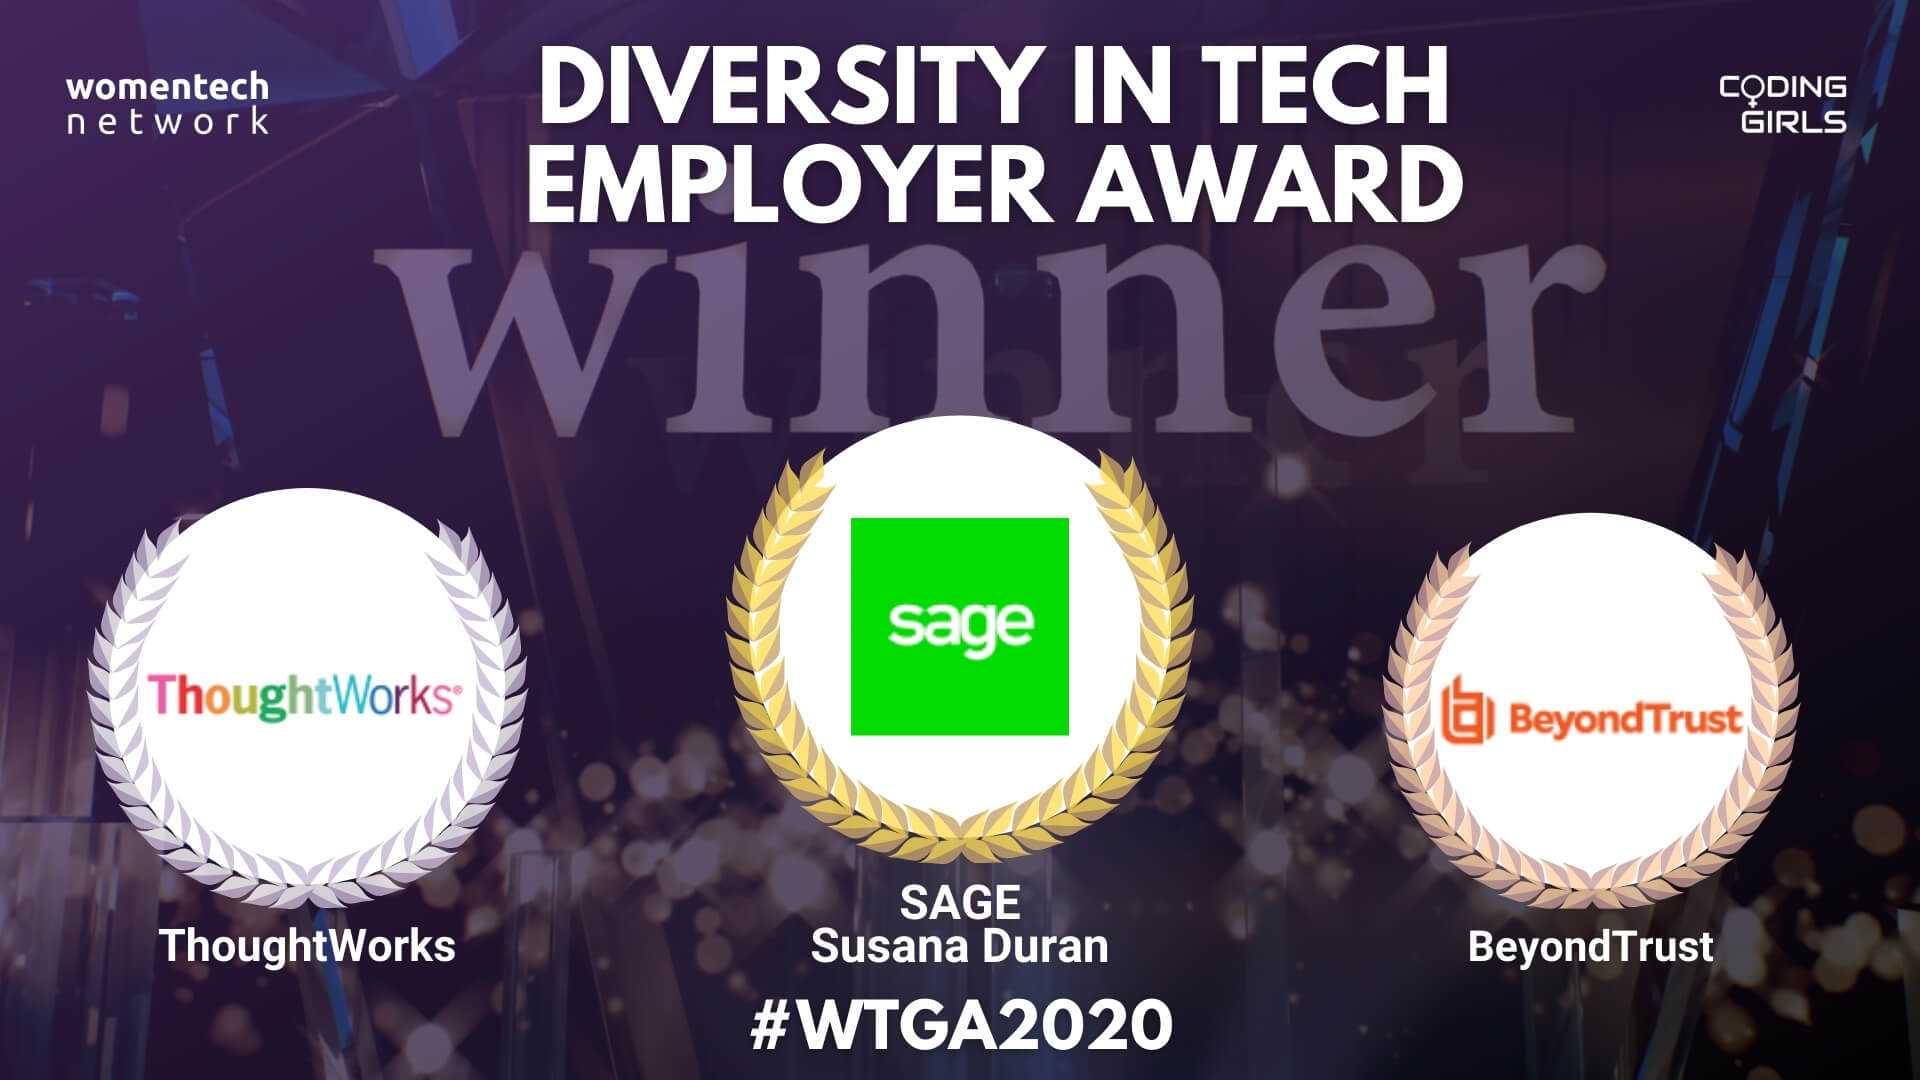 Diversity in Tech of the Year Award